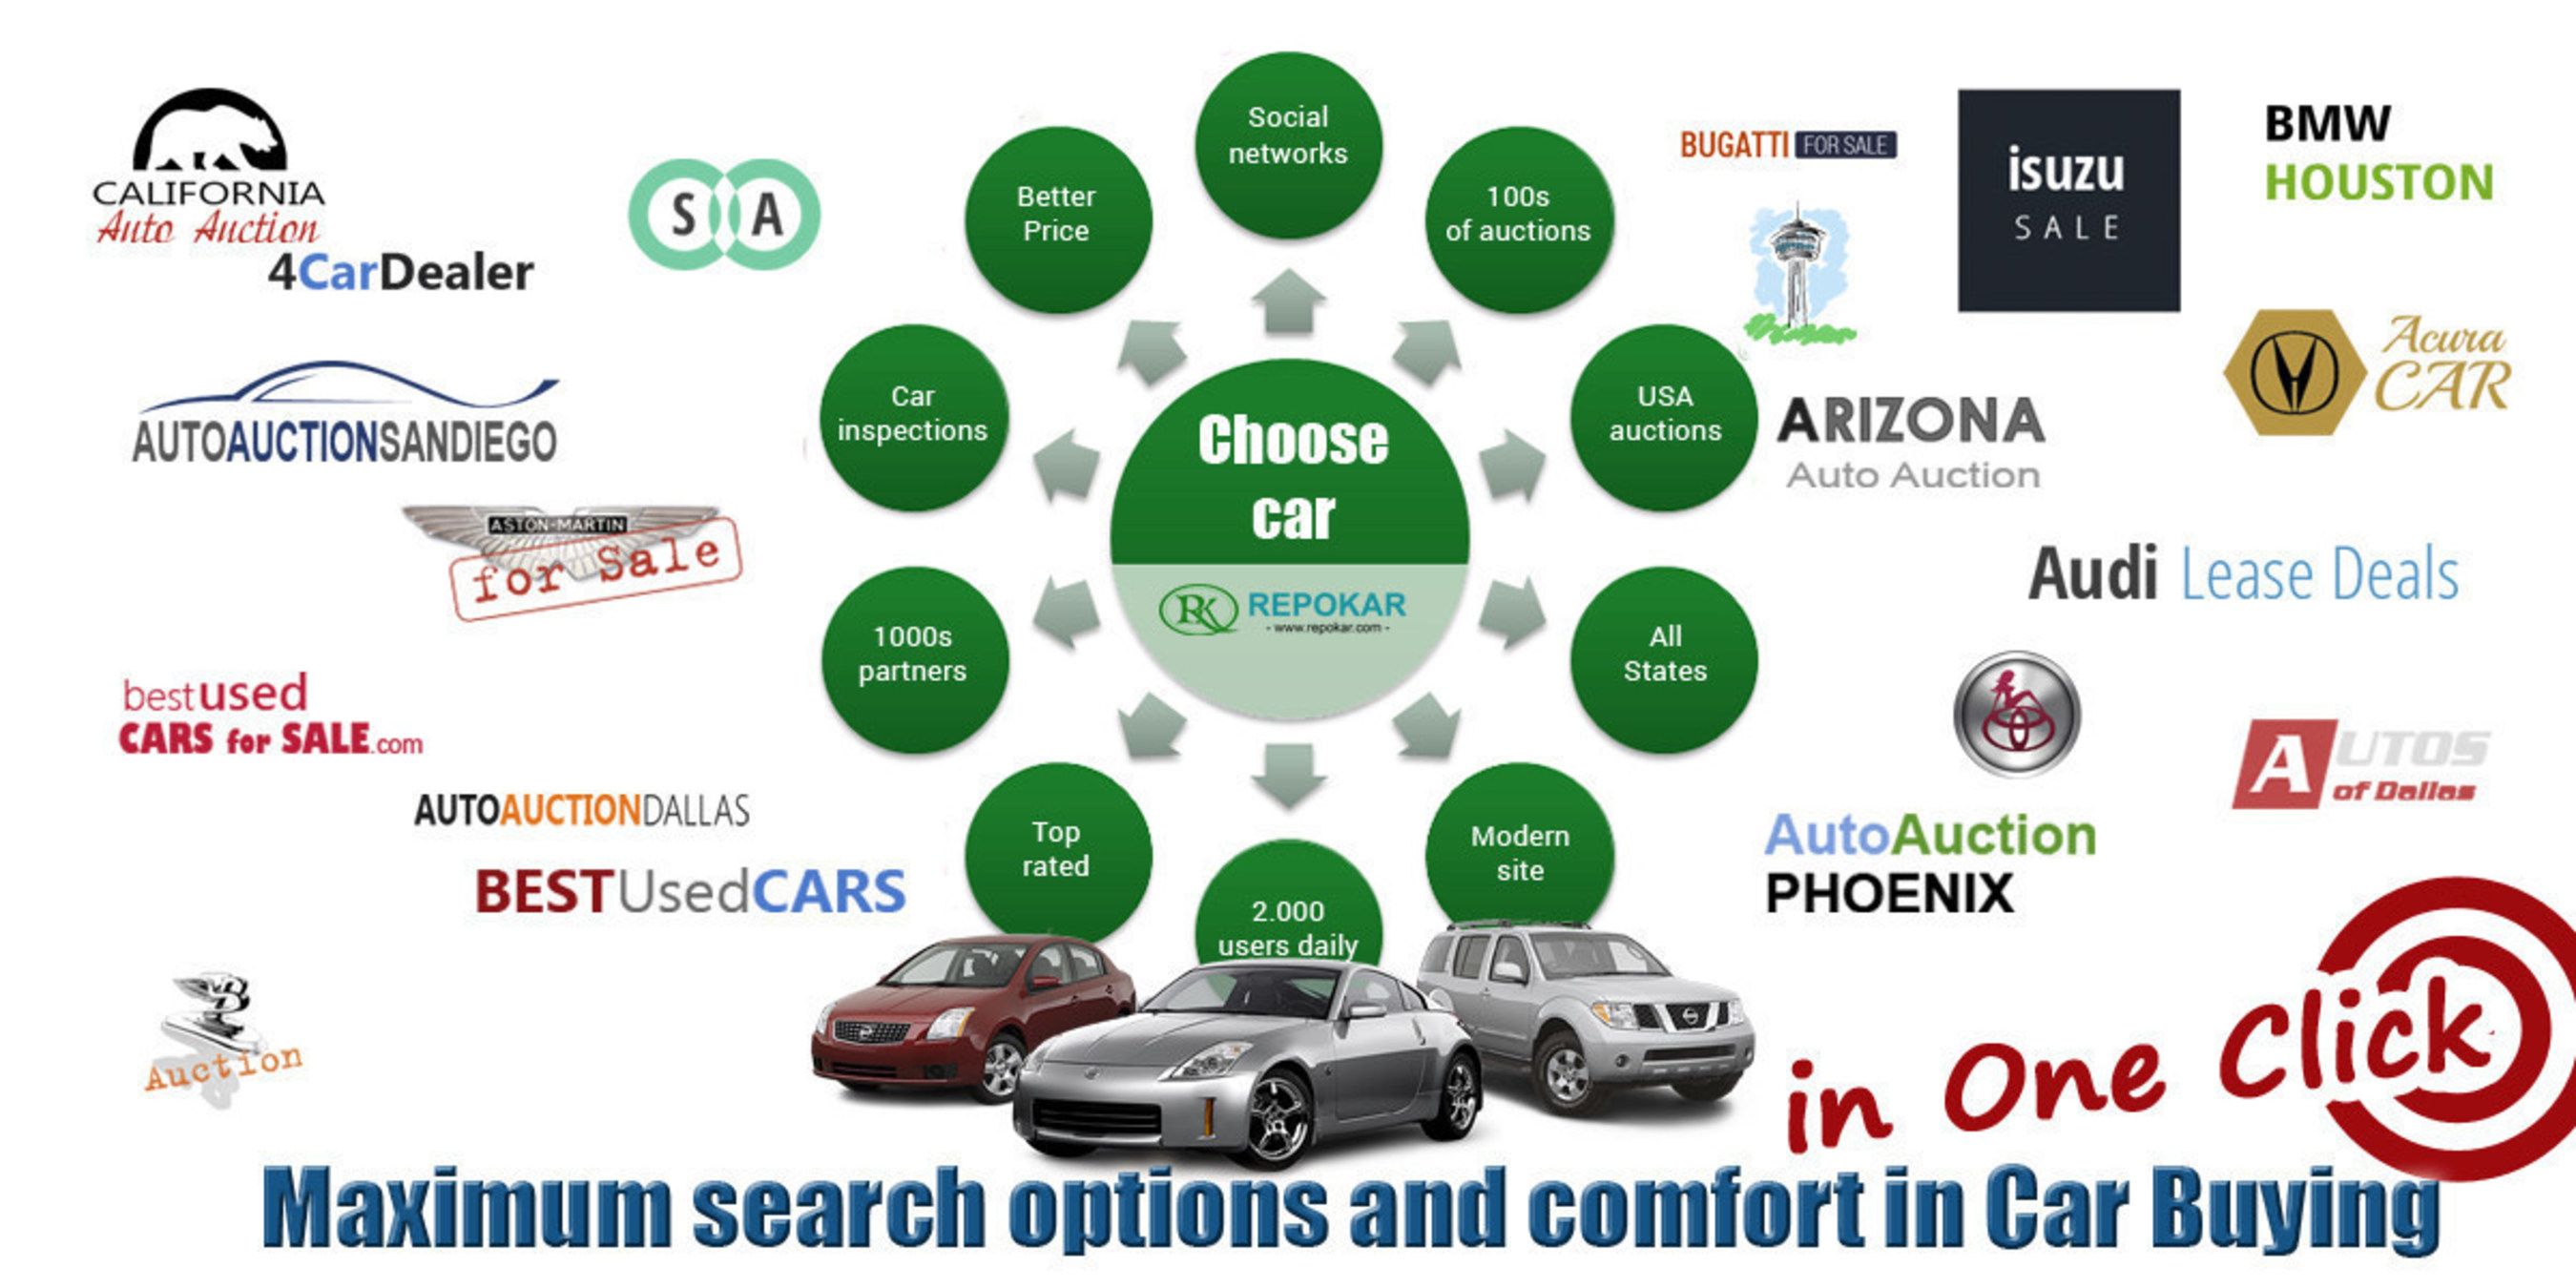 Repokar, Auto Auction, Sales, Automotive, Car, Buyer, Seller, Auction, Old, New, Previously Owned, Finance, Purchase